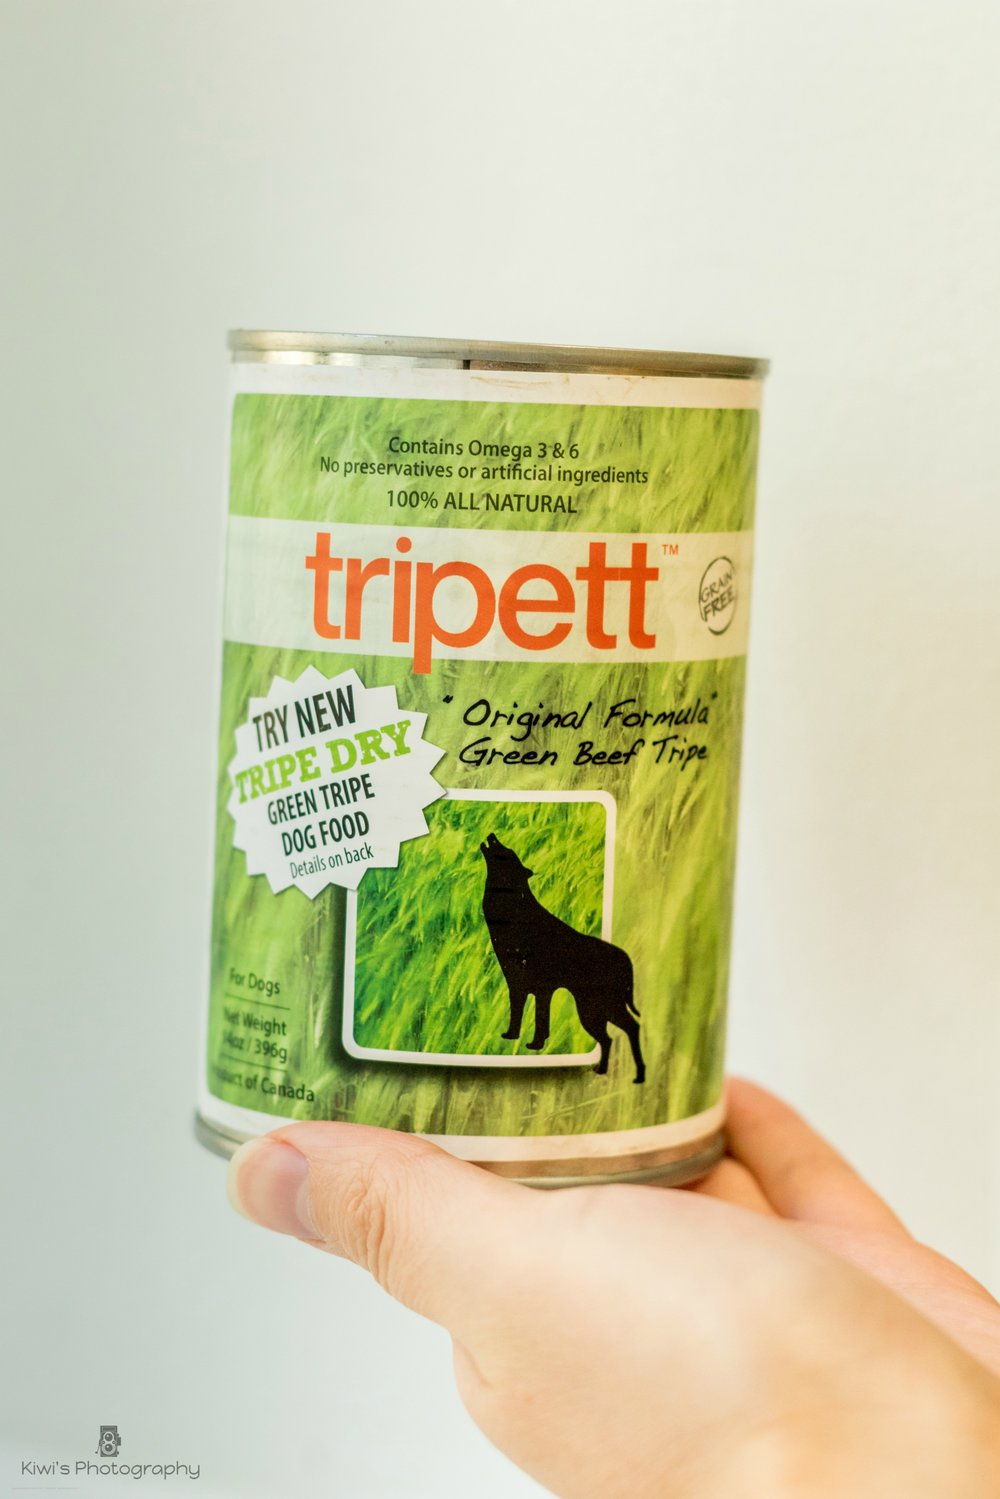 Tripett Canned Green Beef Tripe